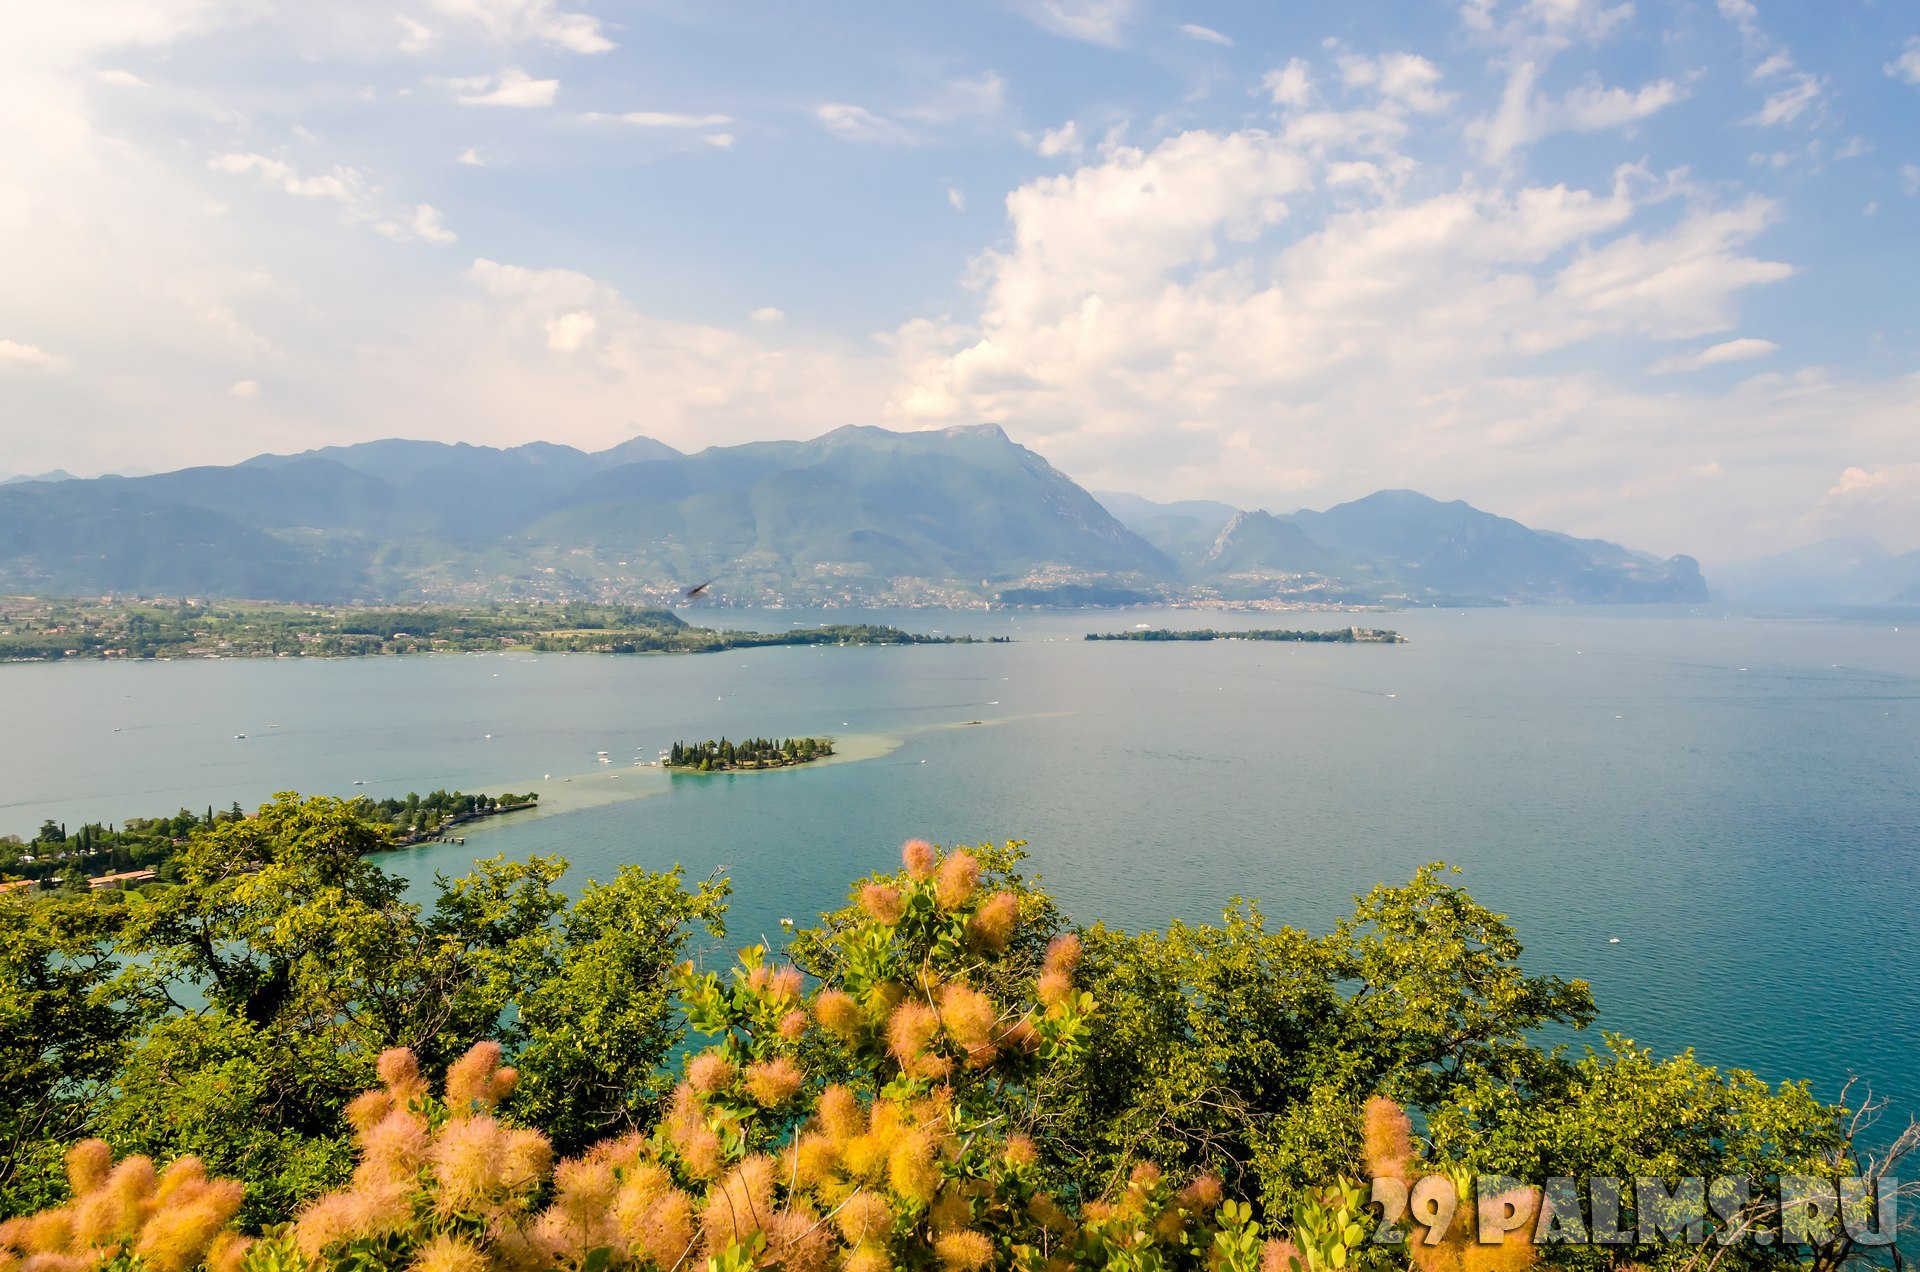 Италия. Озеро Гарда. View from the Manerba Rock on Lake Garda, Italy. Фото marcorubino - Depositphotos